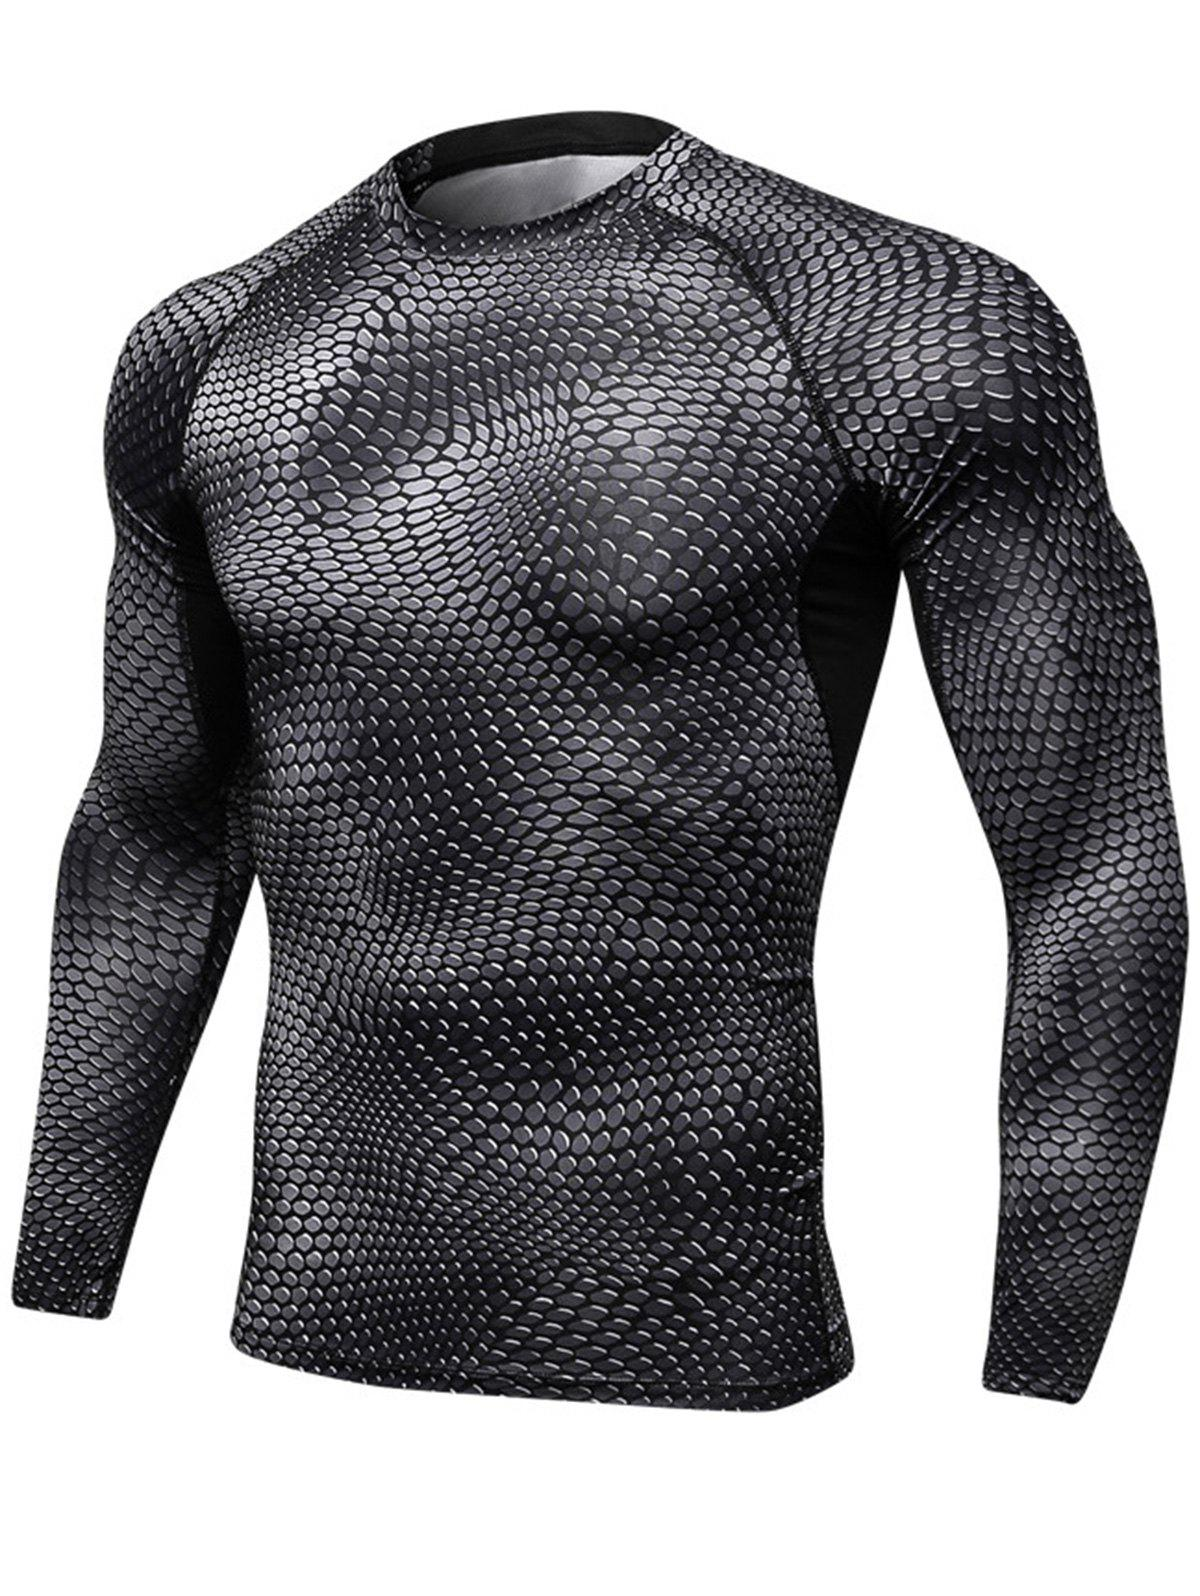 Outfit Quick Dry 3D Printed Stretchy Long Sleeve T-shirt